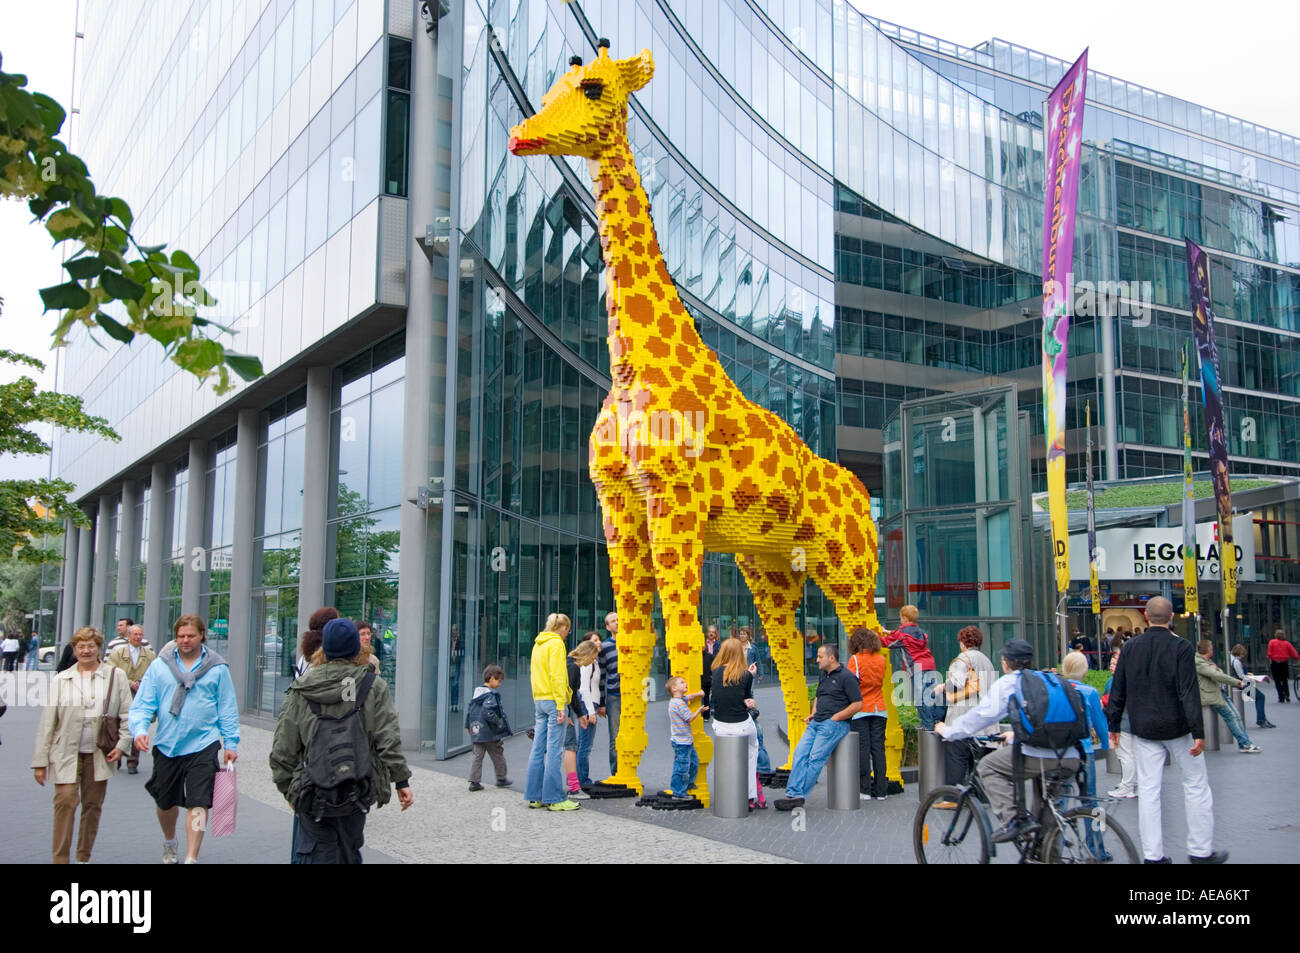 large figure toy giraffe made of lego brick ahead of sony center stock photo 13618763 alamy. Black Bedroom Furniture Sets. Home Design Ideas